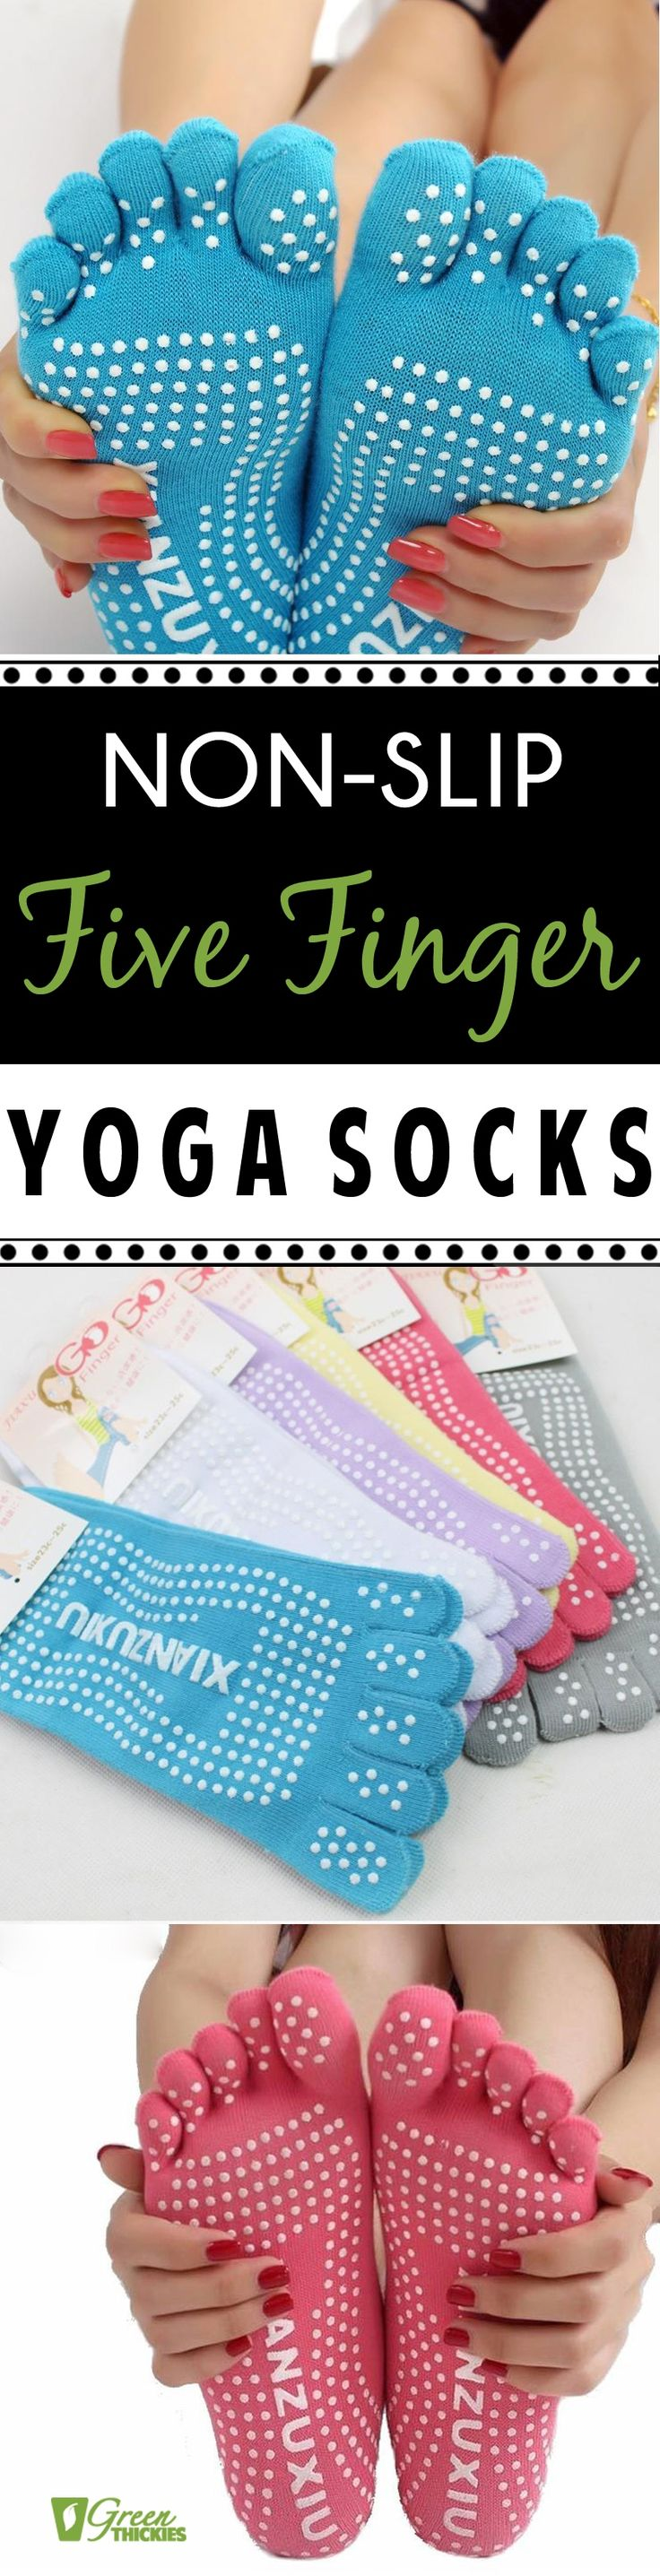 34 best green smoothie books and courses images on pinterest green get 70 off this non slip five finger yoga socks today only get fandeluxe Image collections